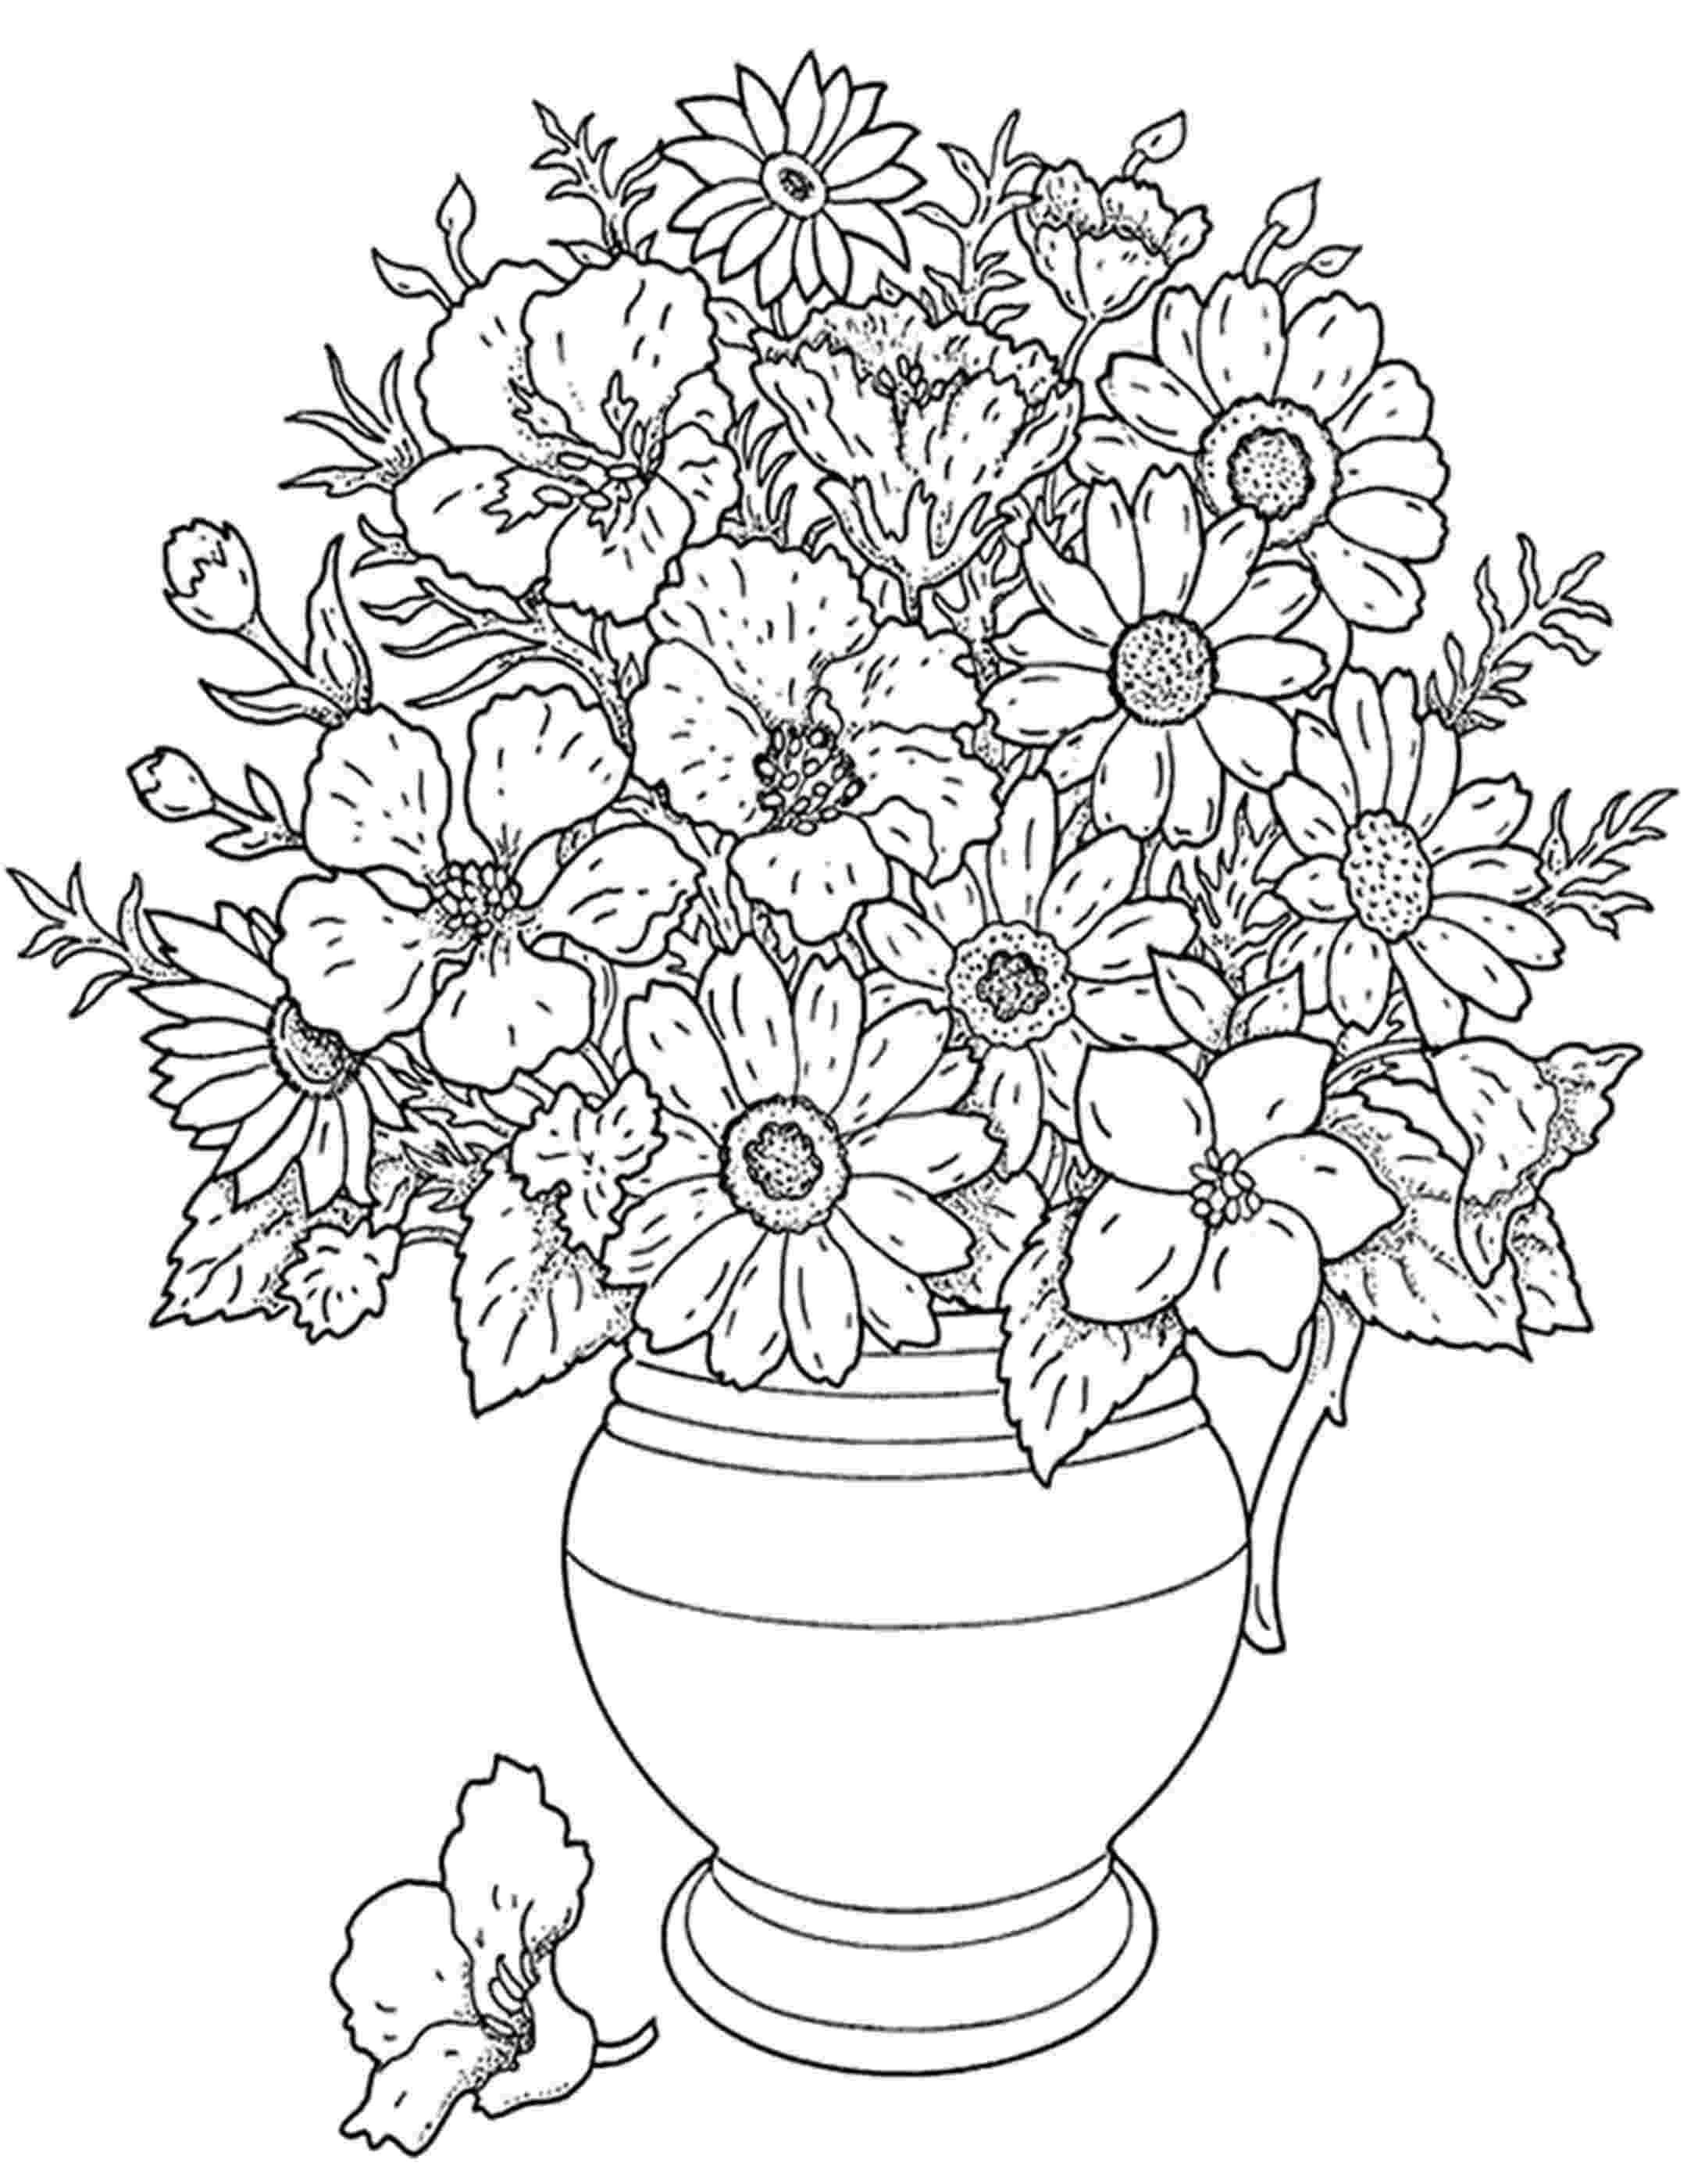 flower bouquet coloring pages flower coloring pages pages flower coloring bouquet